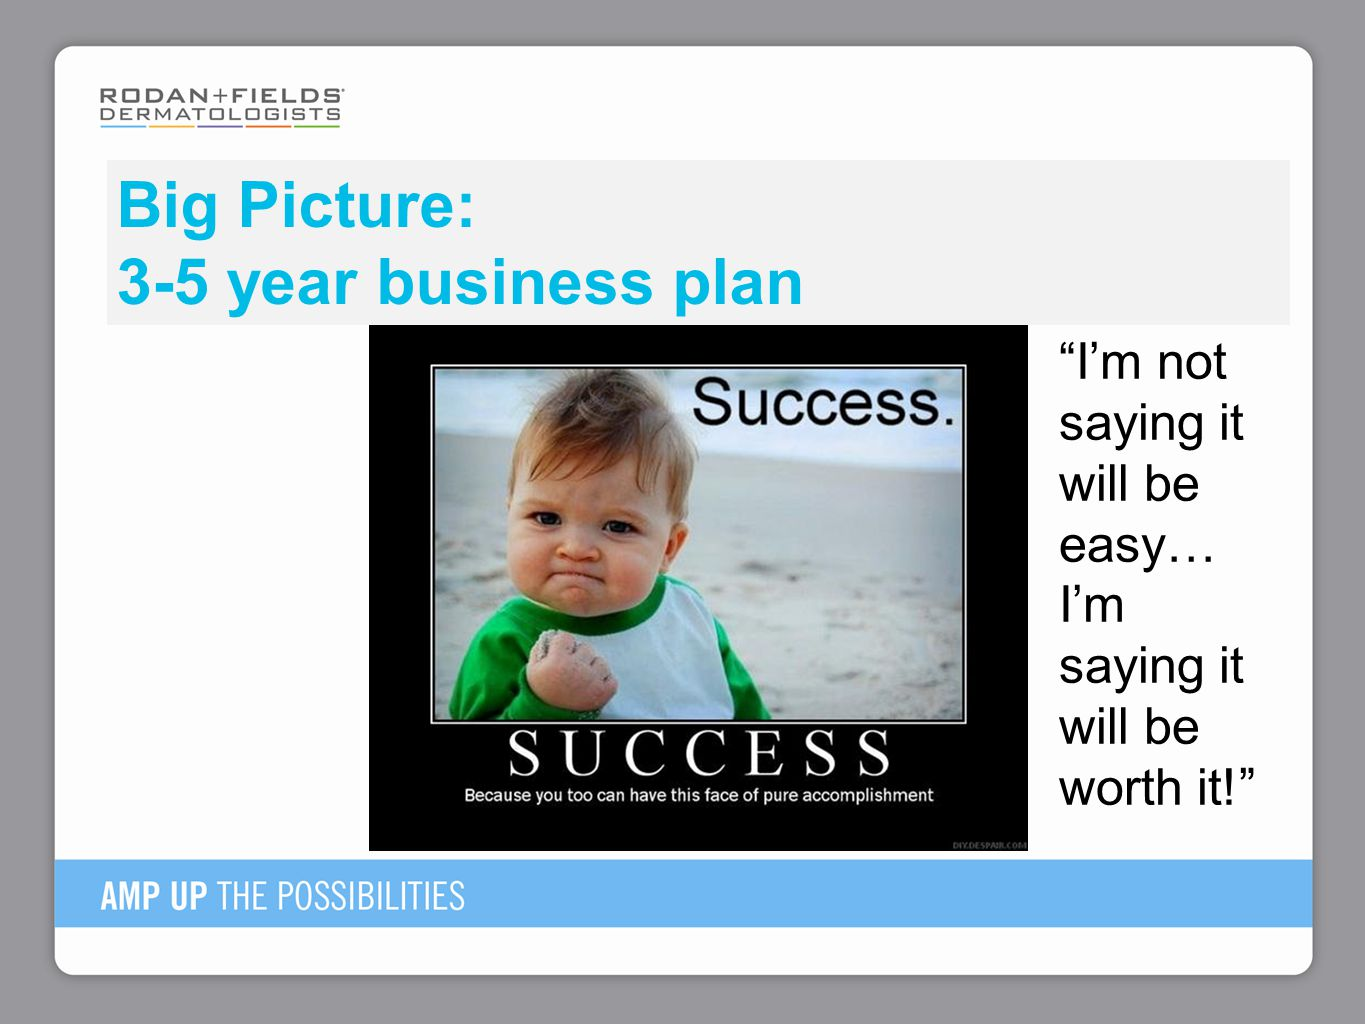 Big Picture: 3-5 year business plan